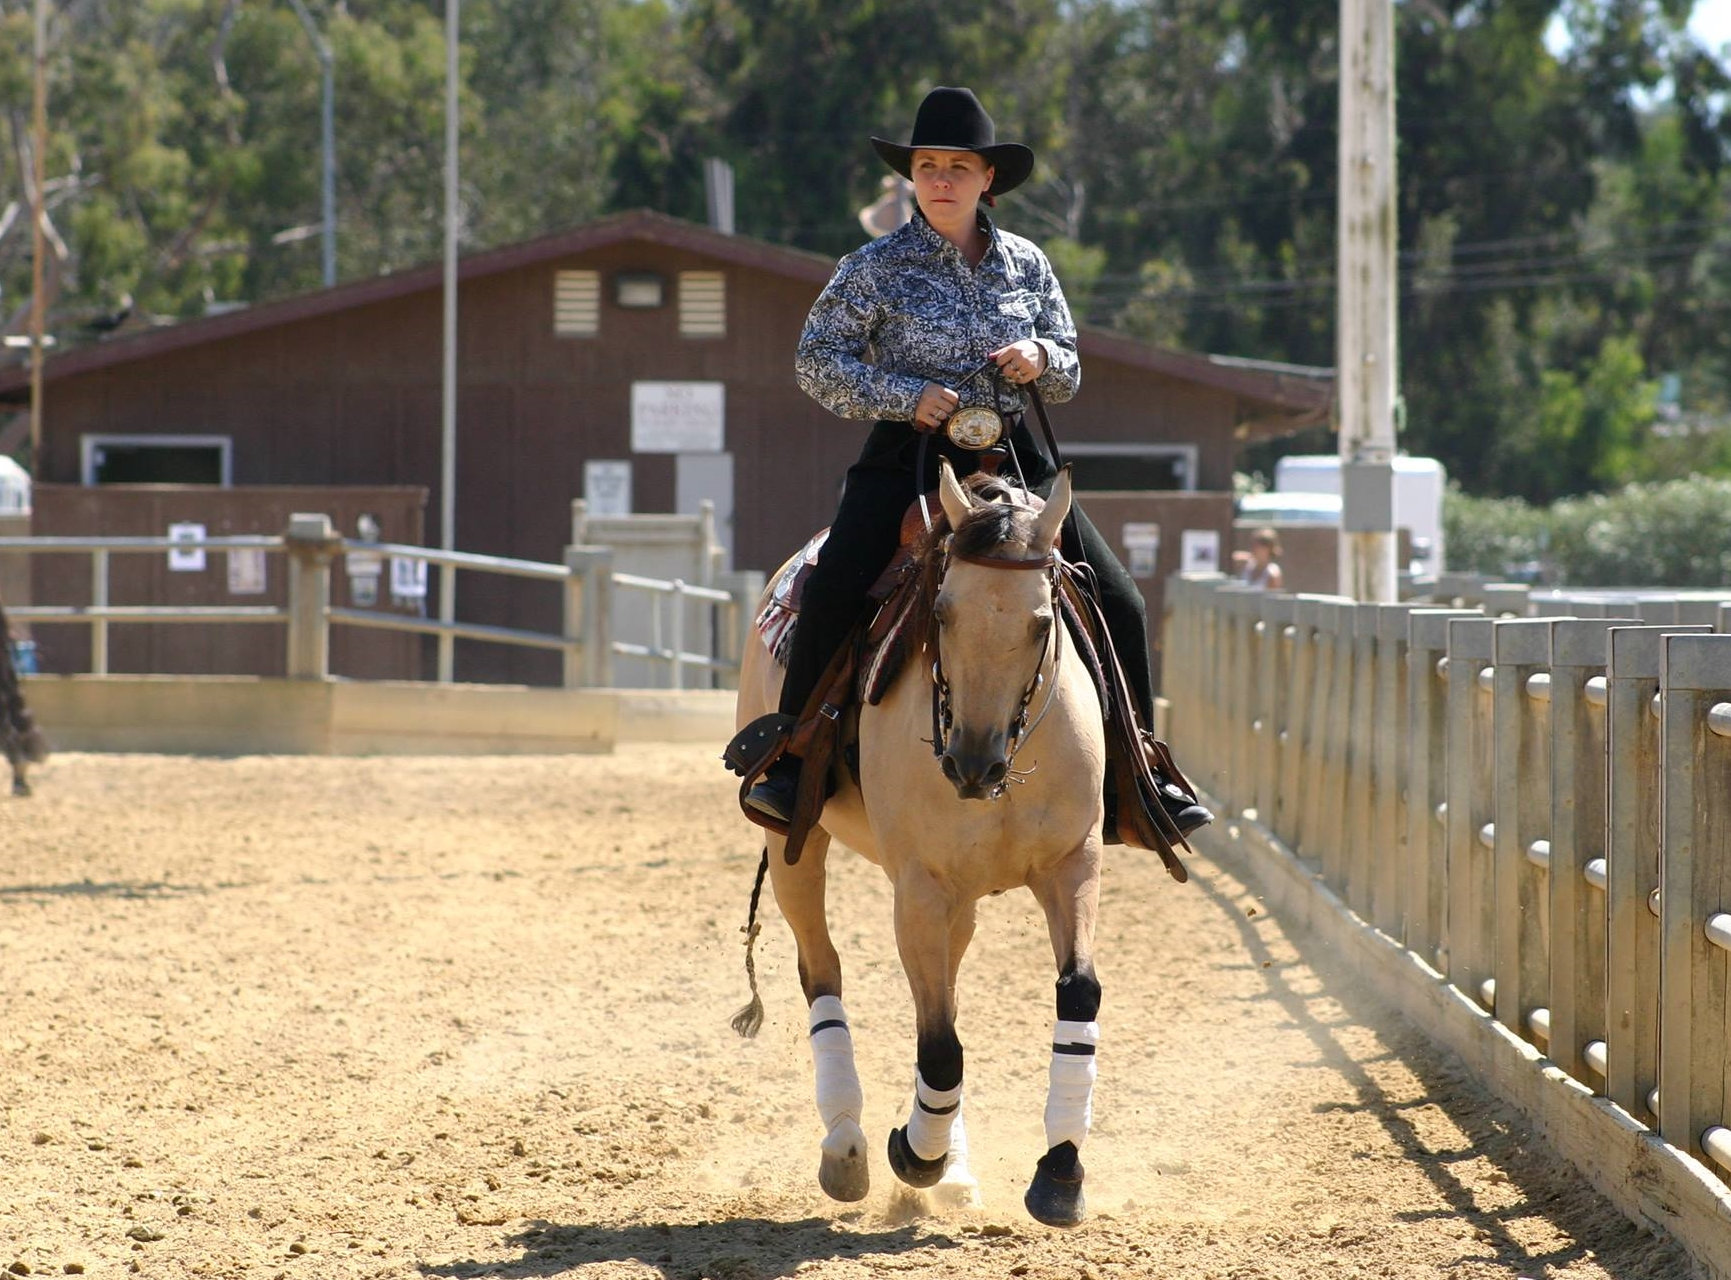 Mares Over Geldings - Are Mares Really the Best? | SLO Horse News